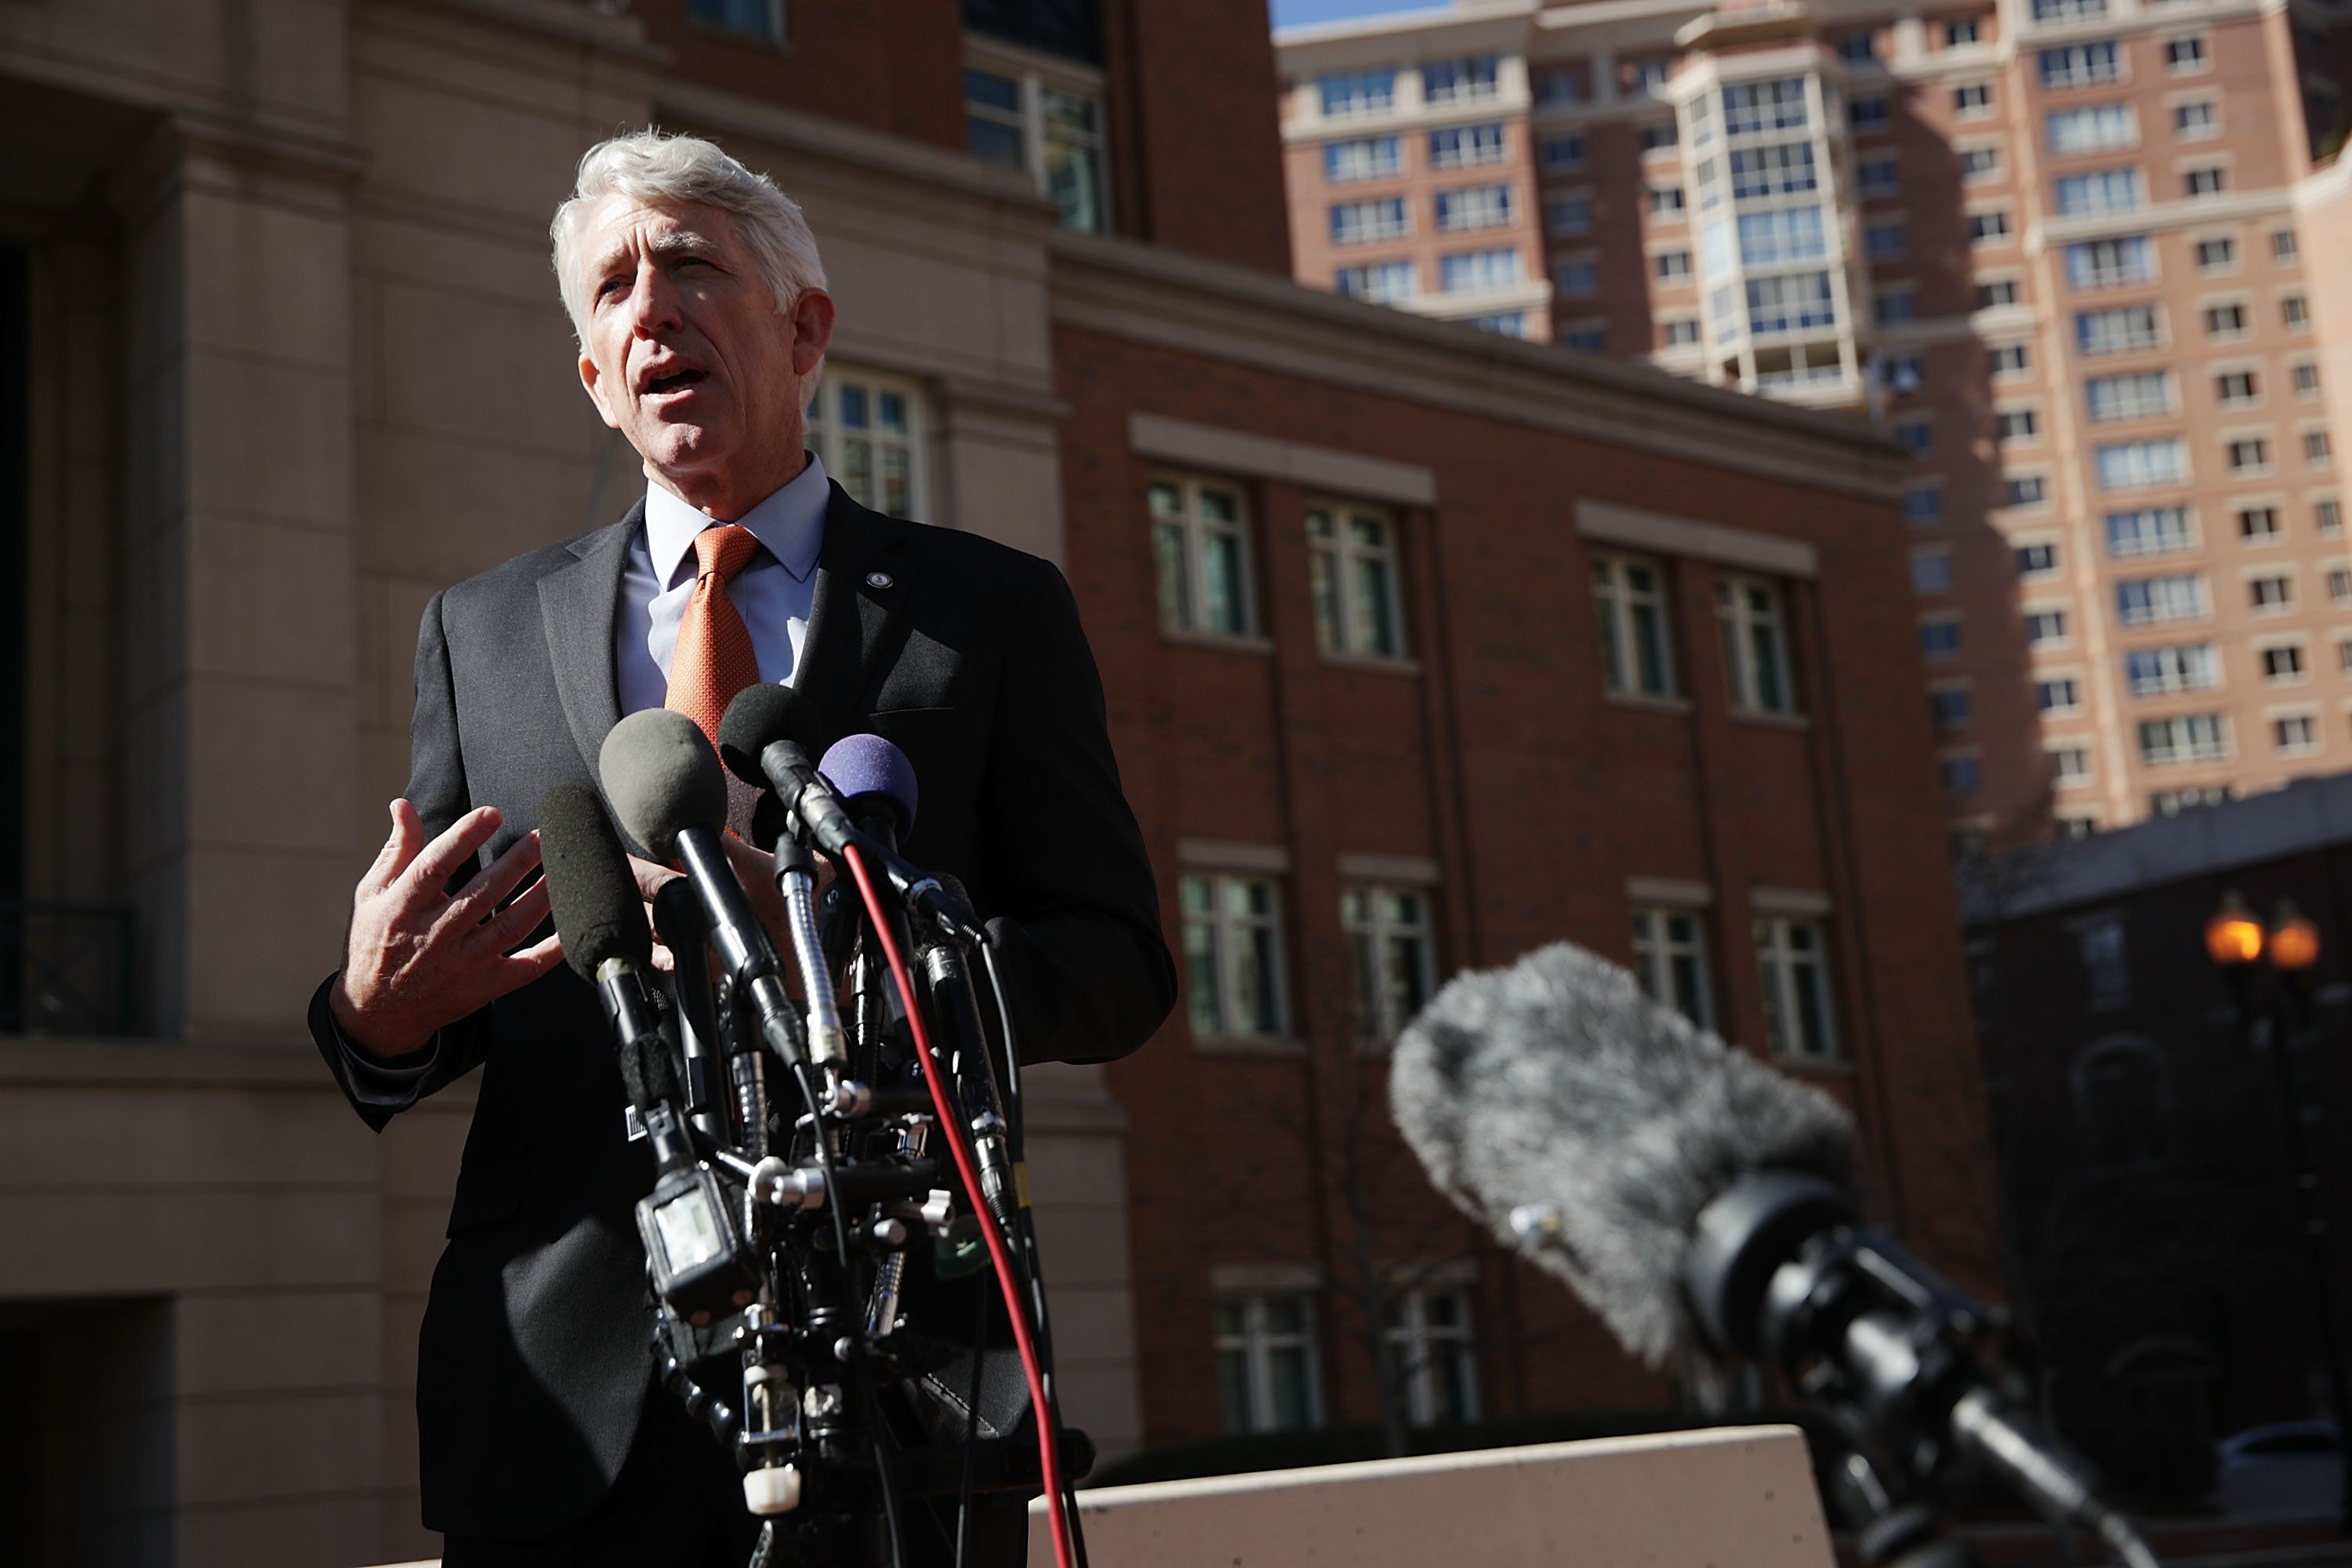 ALEXANDRIA, VA - FEBRUARY 10:  Virginia Attorney General Mark Herring speaks to members of the media after a hearing February 10, 2017 in front of a U.S. District Court in Alexandria, Virginia. Attorney General Herring attended the hearing for a request he filed to block the travel ban executive order issued by President Donald Trump.  (Photo by Alex Wong/Getty Images)